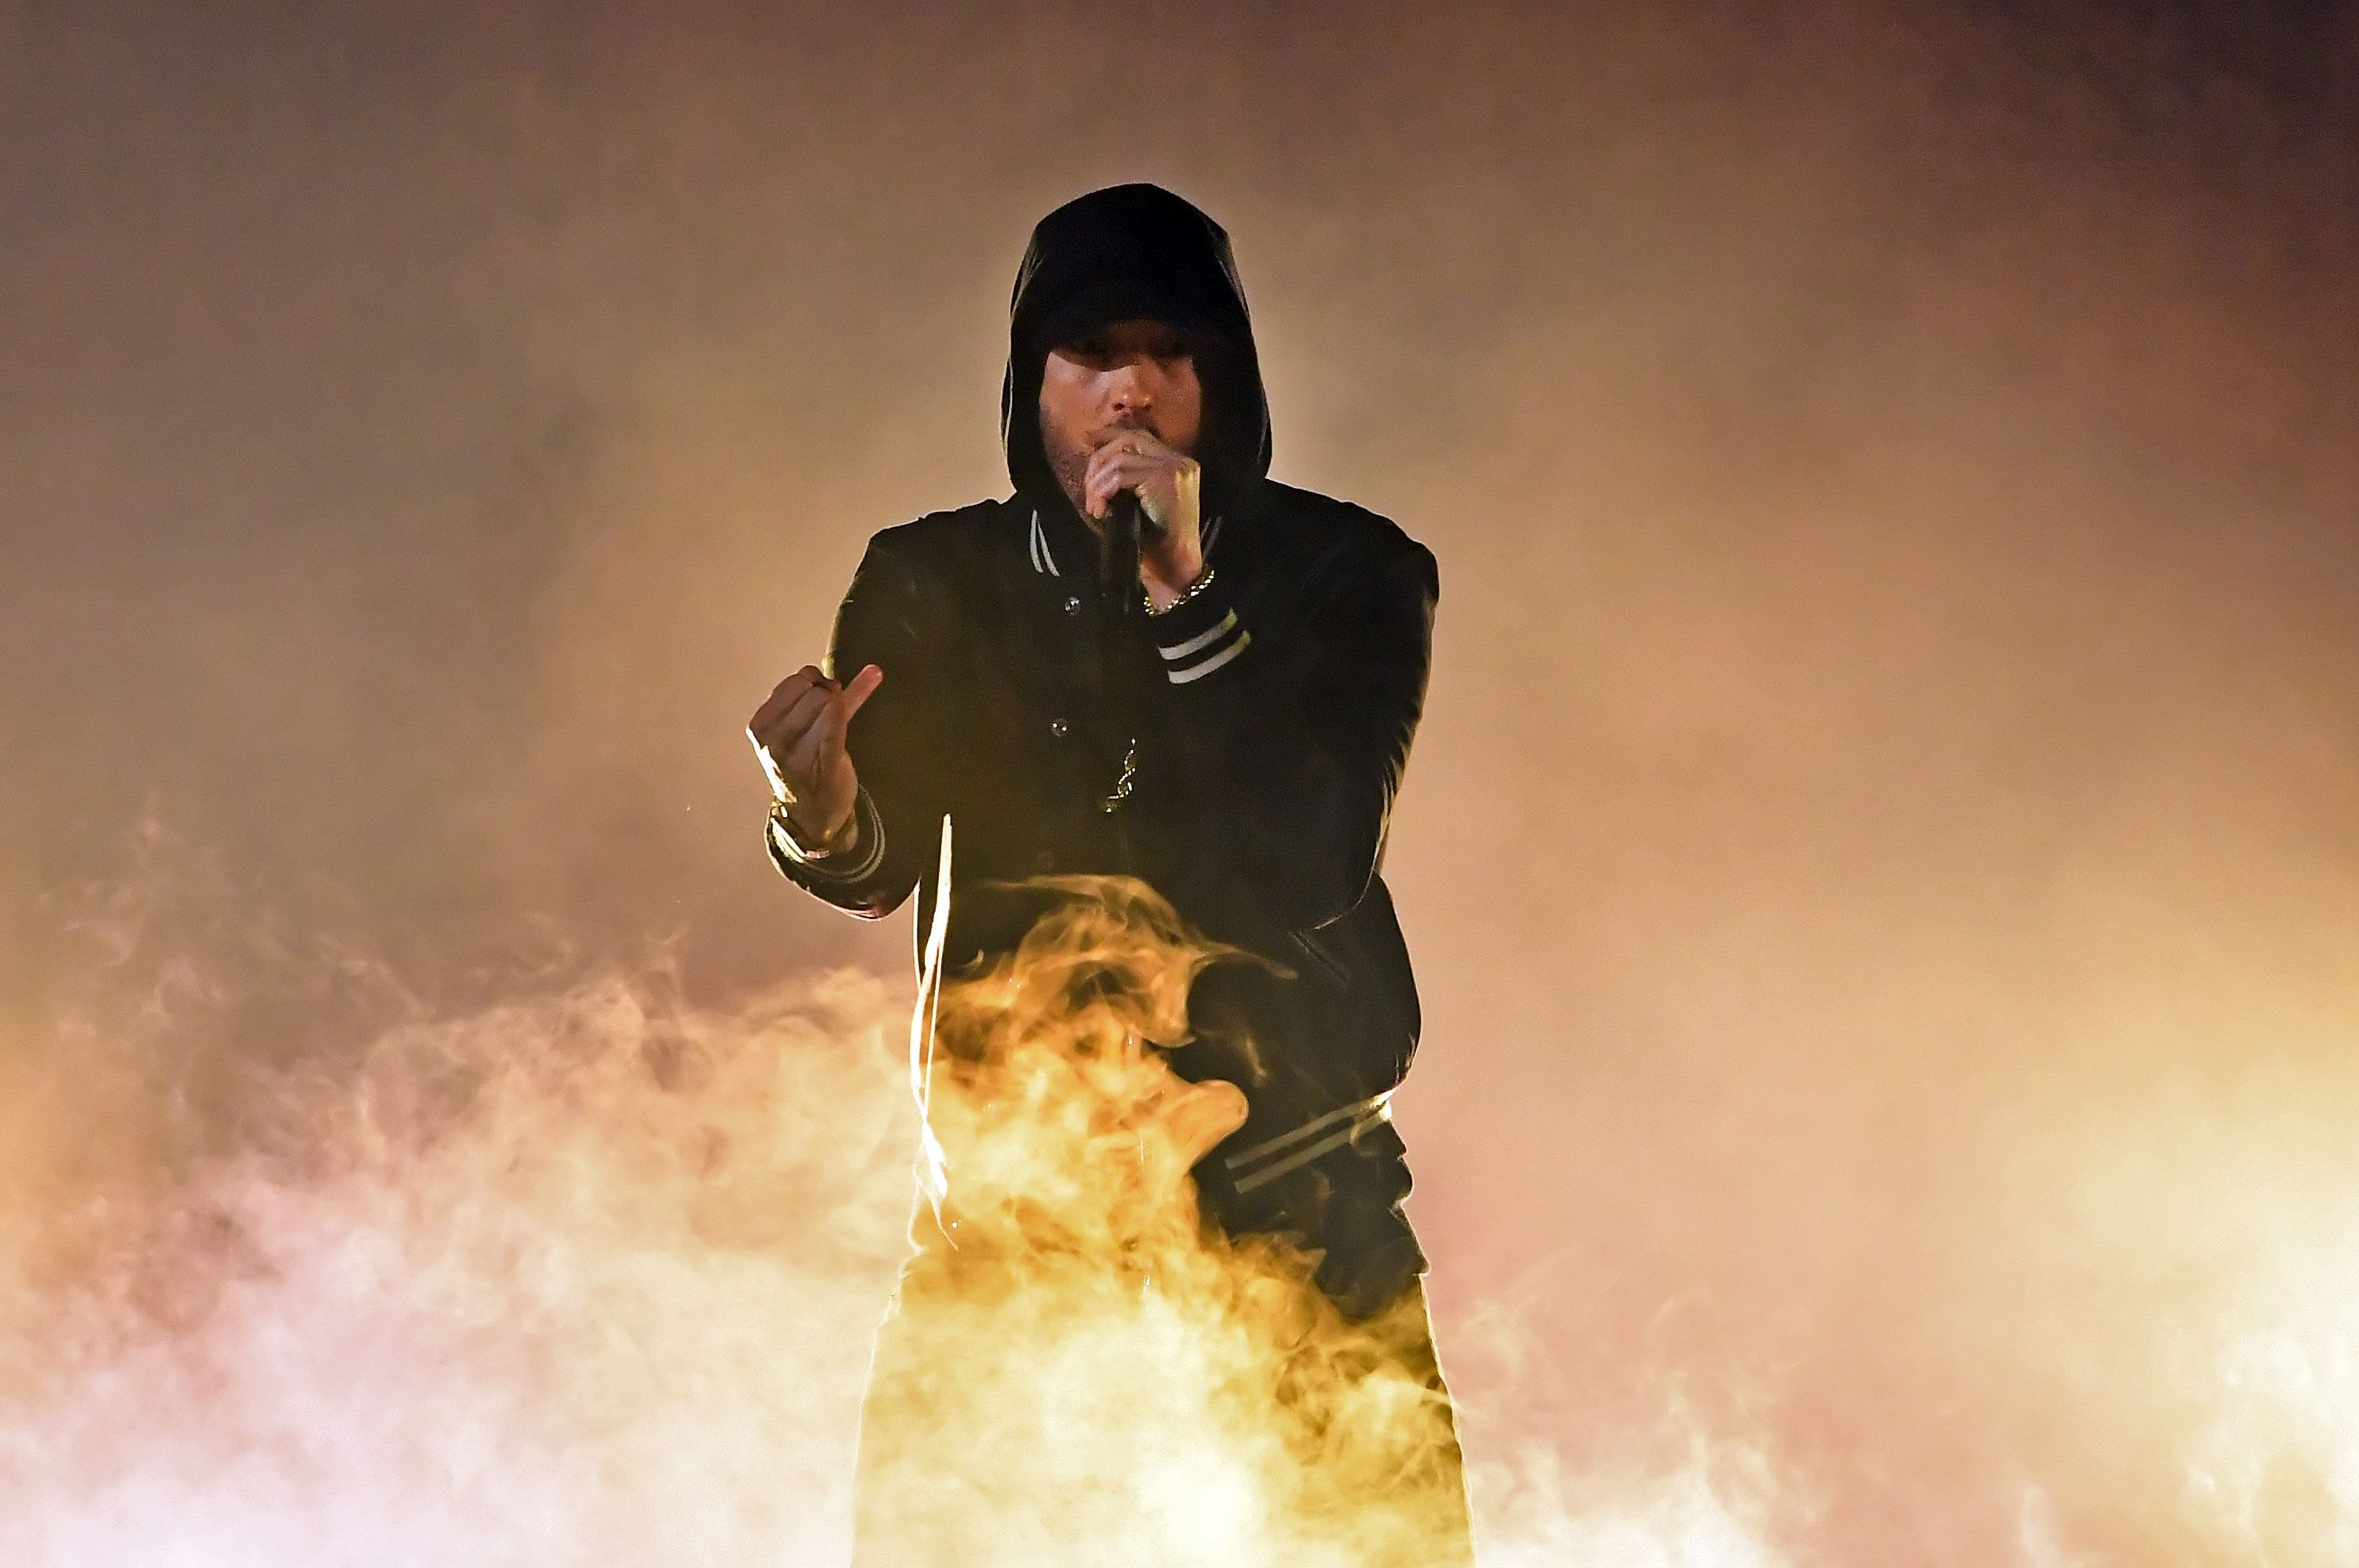 Eminem Rips NRA In A Rap: 'They Love Their Guns More Than Our